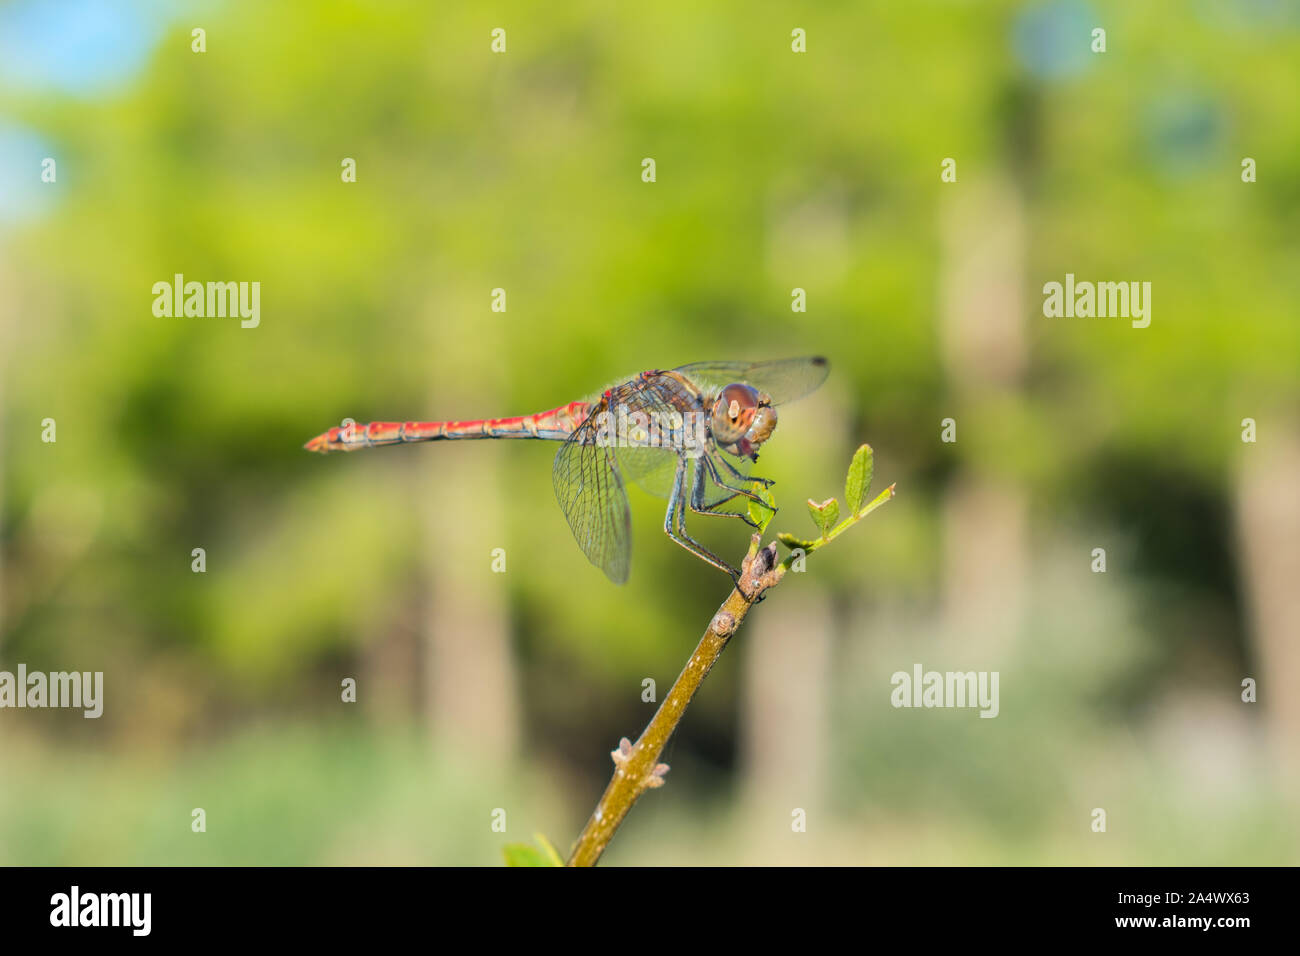 Red Veined Darter perching on a twig Stock Photo